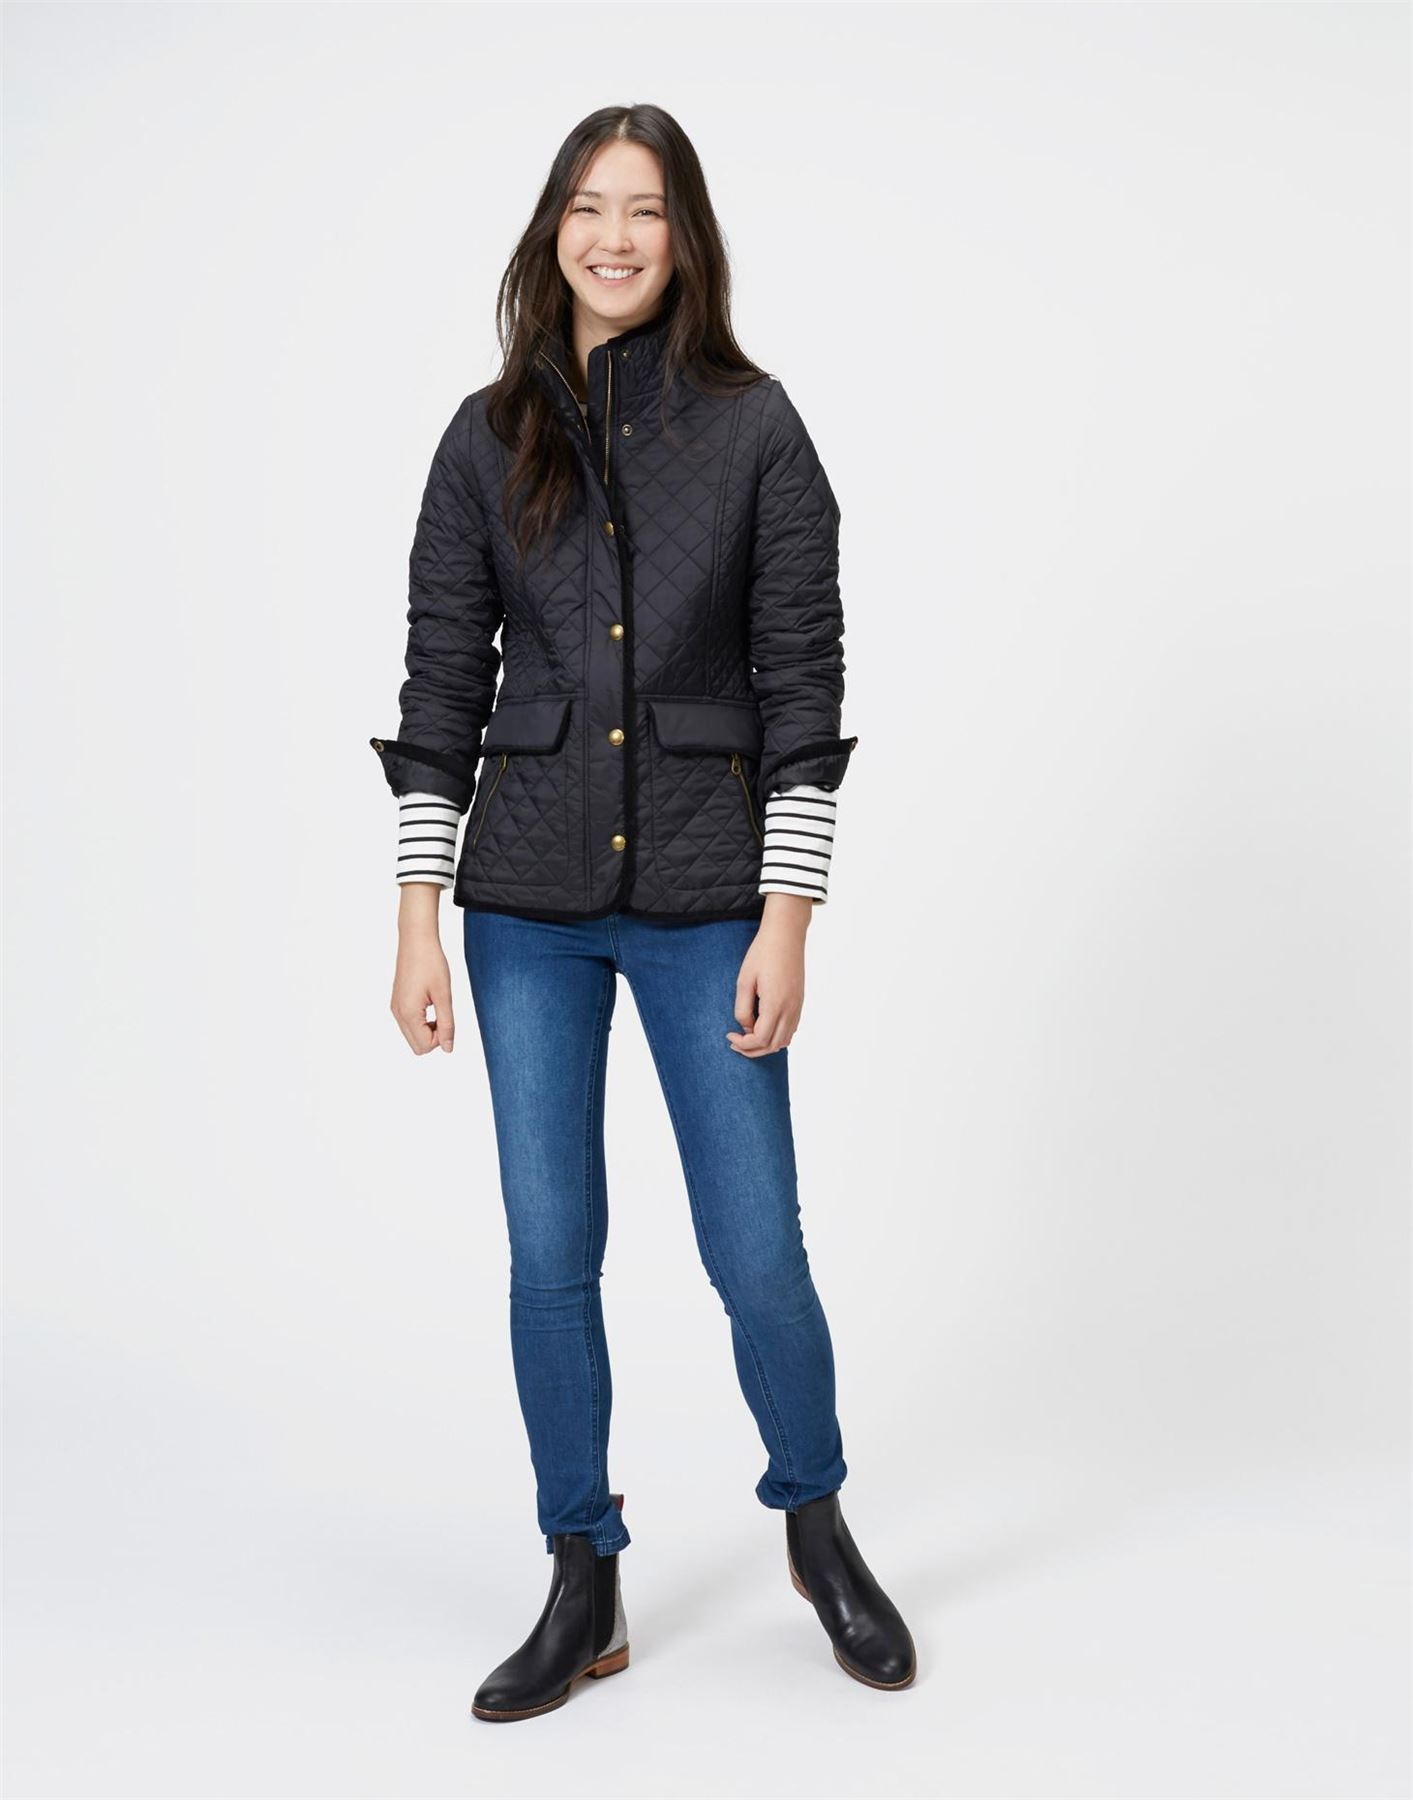 23718e5ae8b7 Joules Newdale Quilted Jacket Ladies Classic Fit Equestrian Warm ...